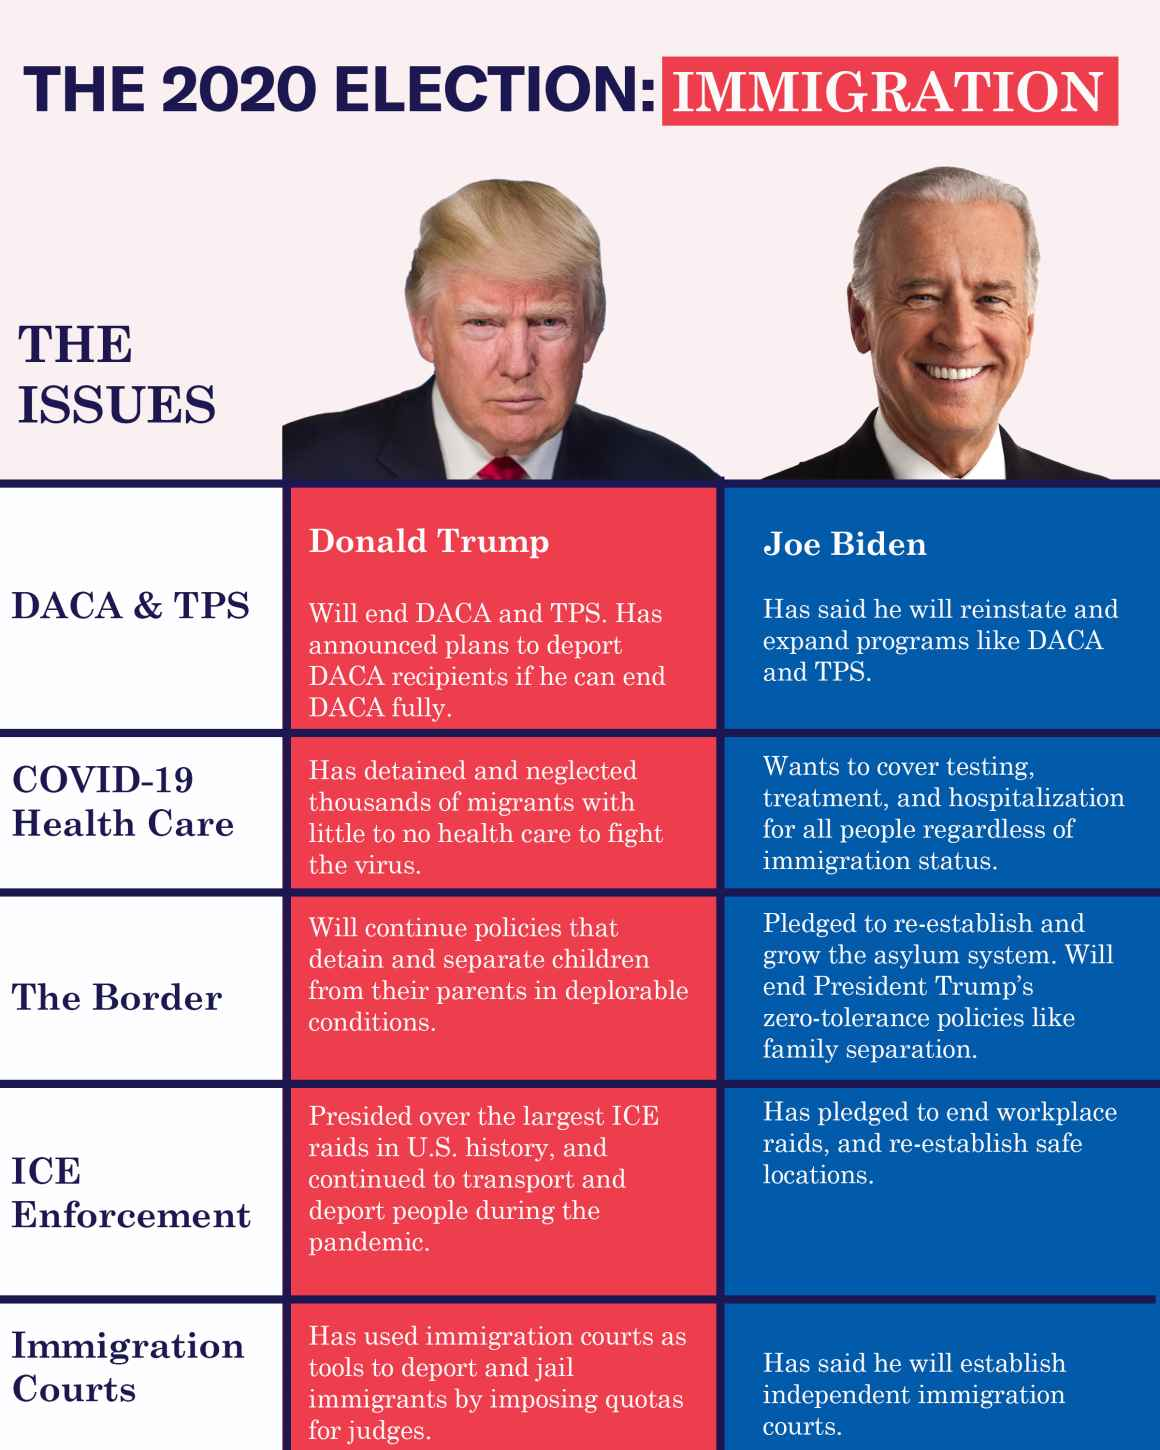 Trump and Biden on immigration issues